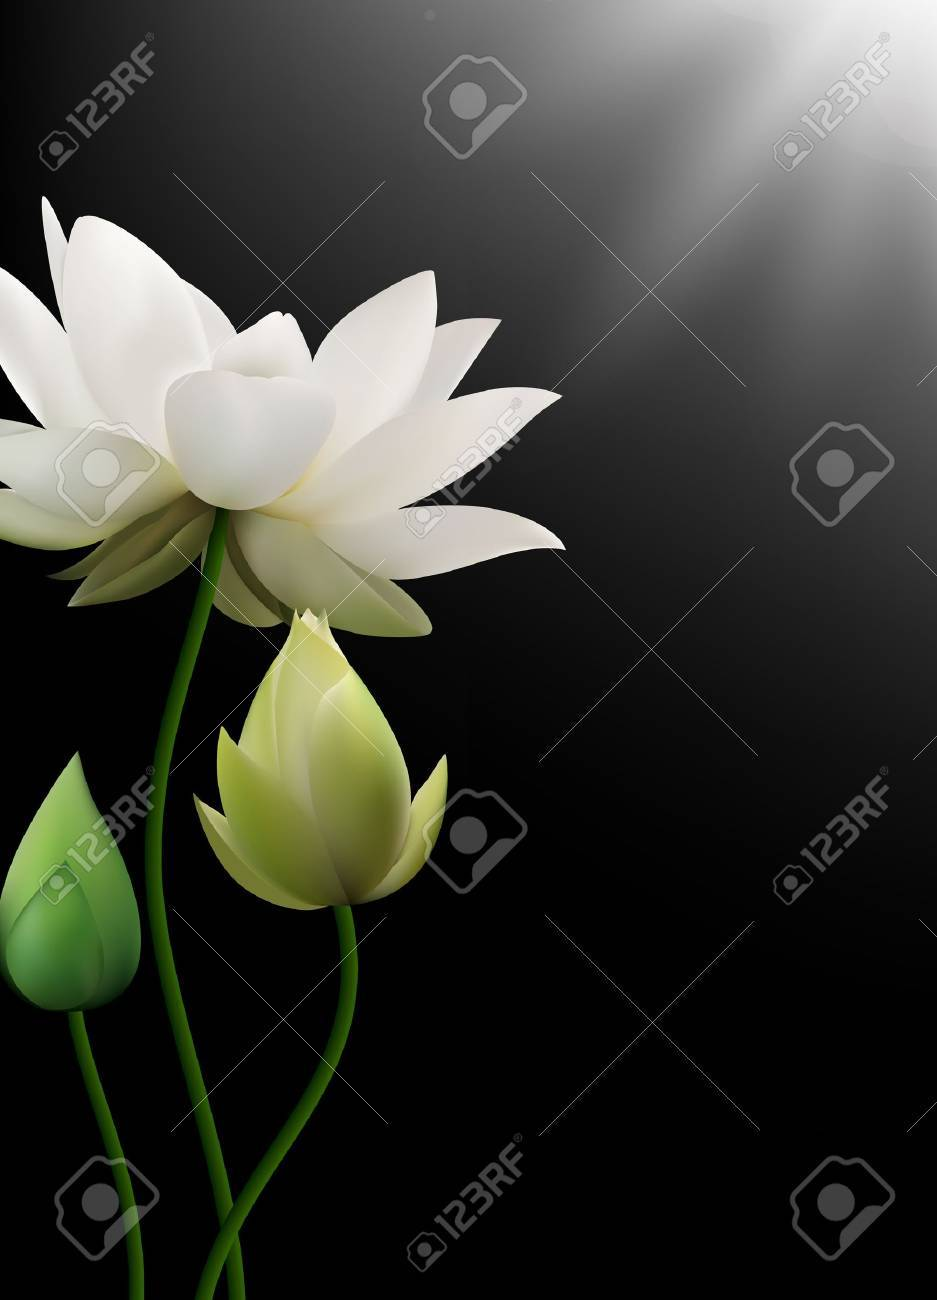 Vector illustration of white lotus flowers with rays on black vector vector illustration of white lotus flowers with rays on black background izmirmasajfo Image collections